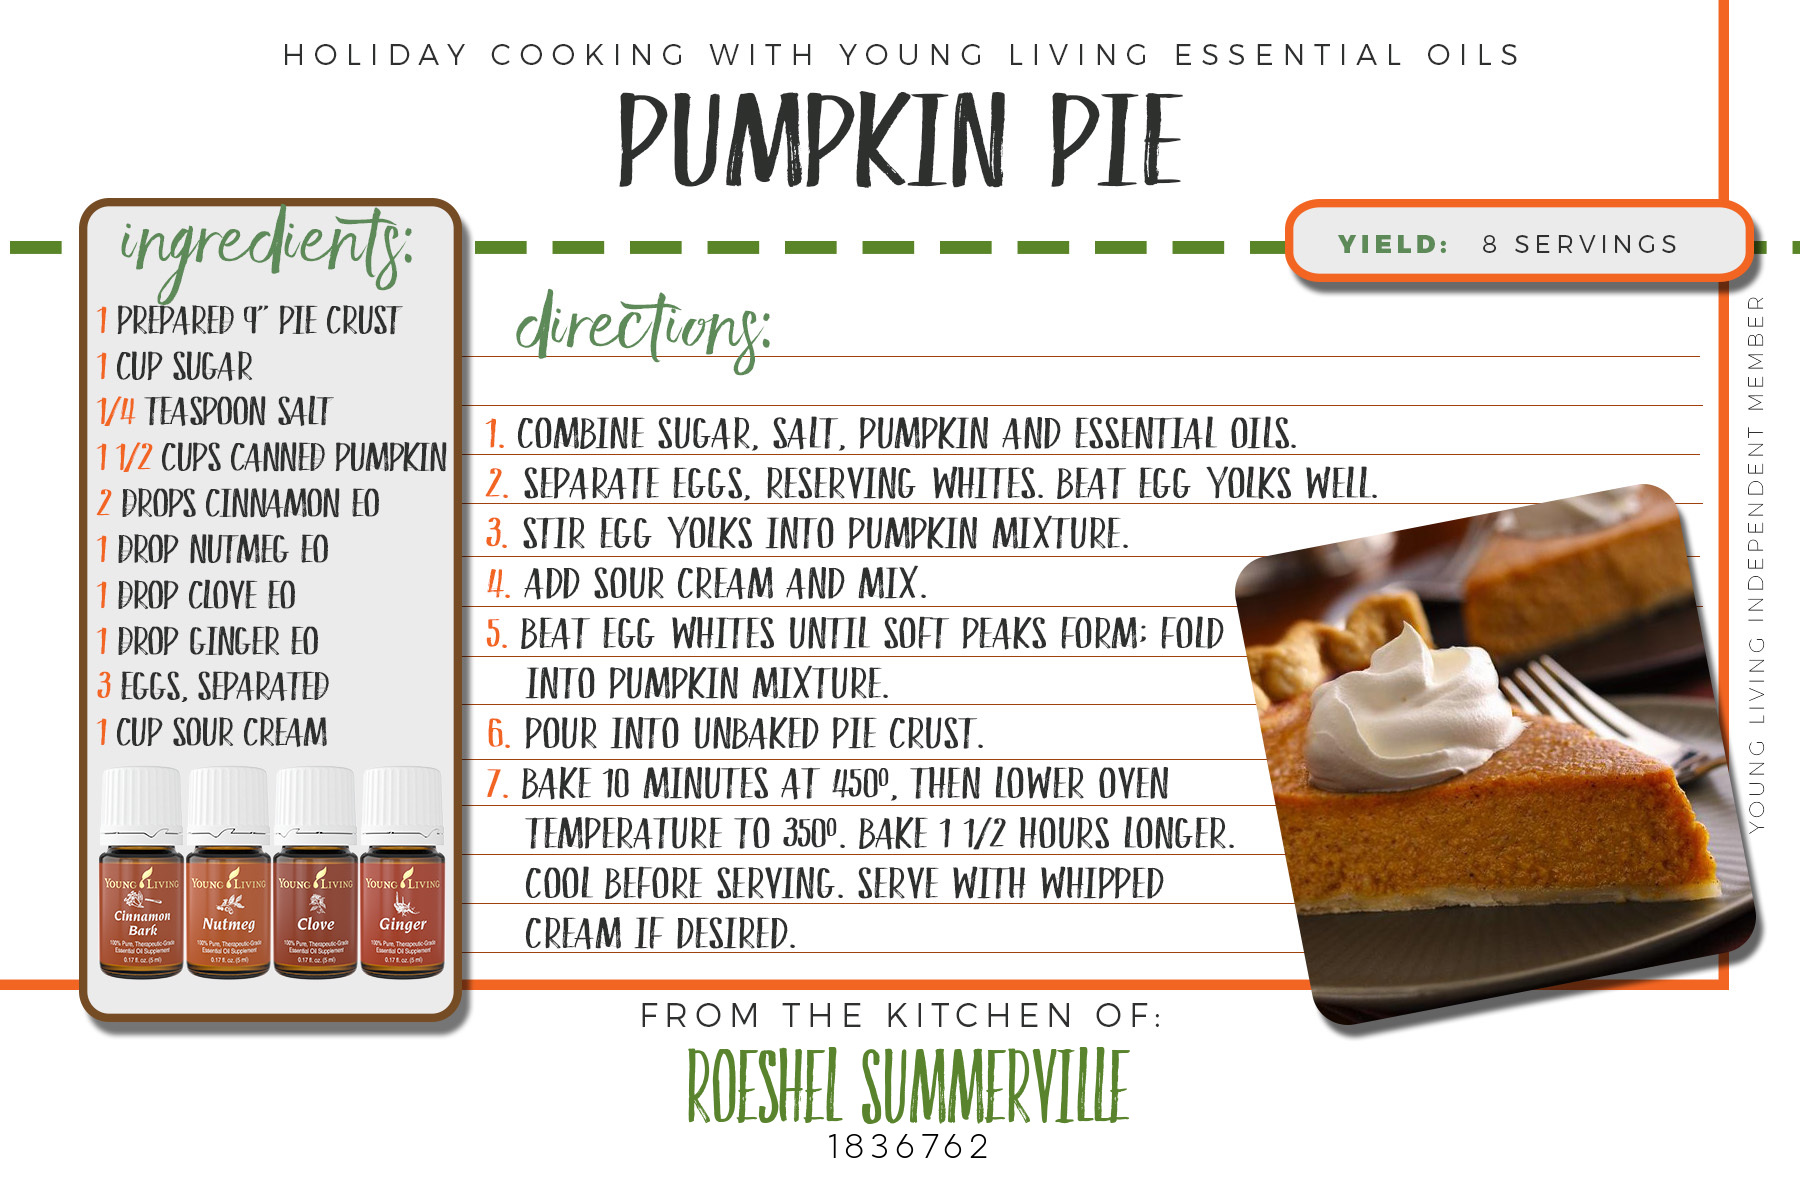 holiday cooking recipes with essential oils @diyshowoff